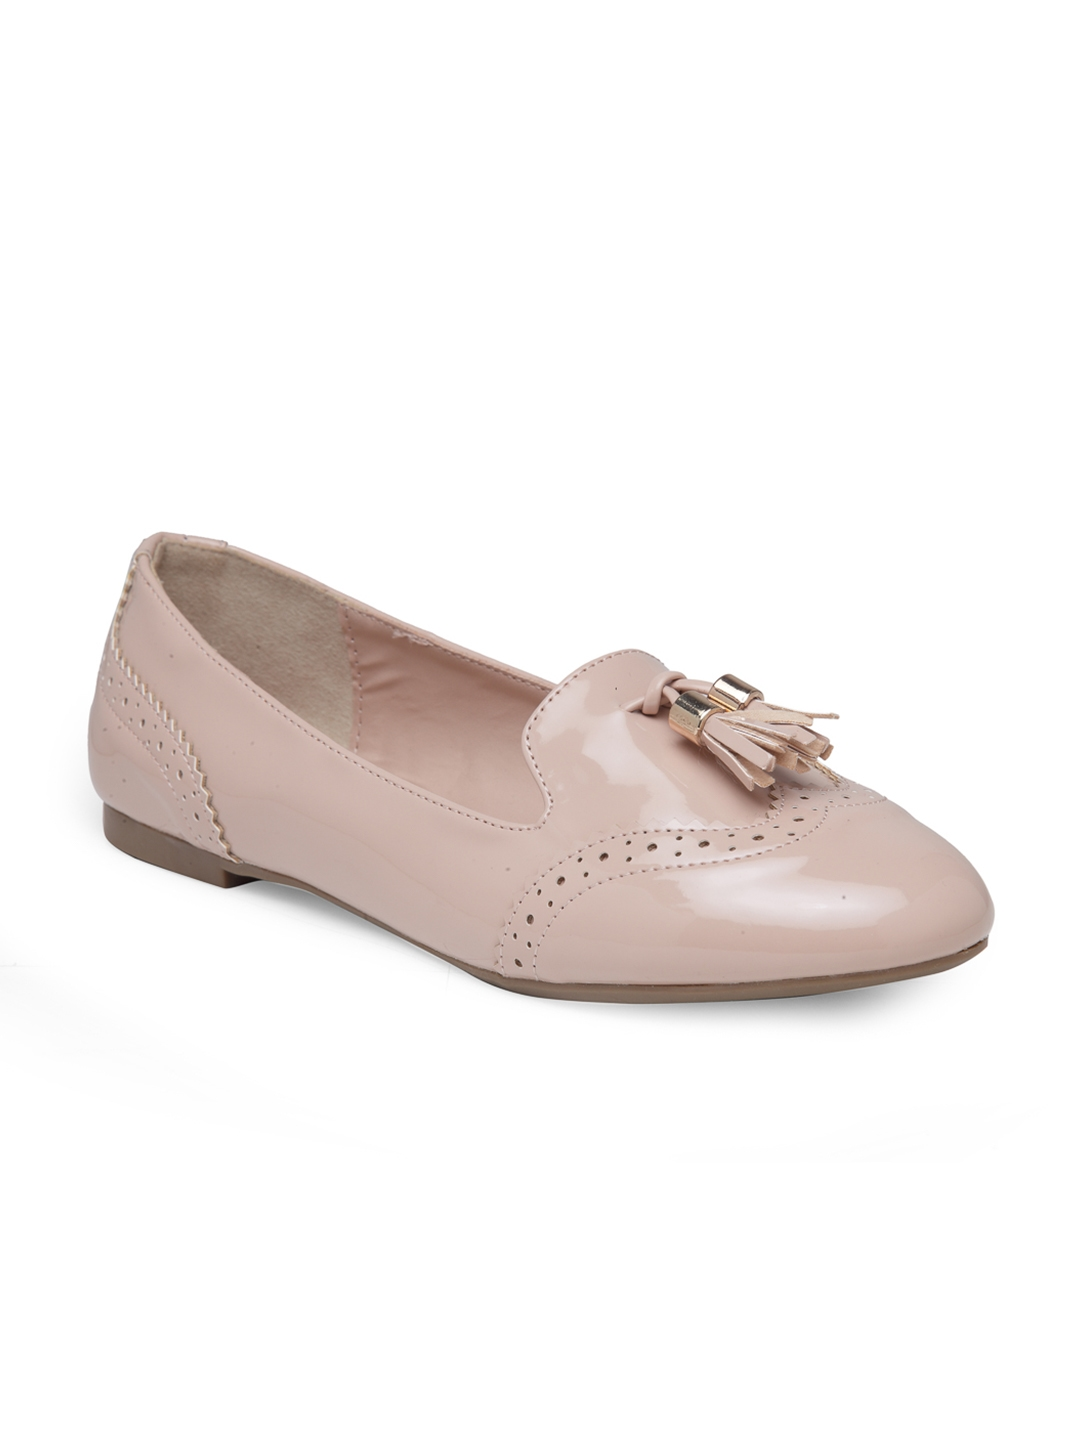 0c62381acd15 Buy London Rag Women Nude Coloured Solid Synthetic Ballerinas ...